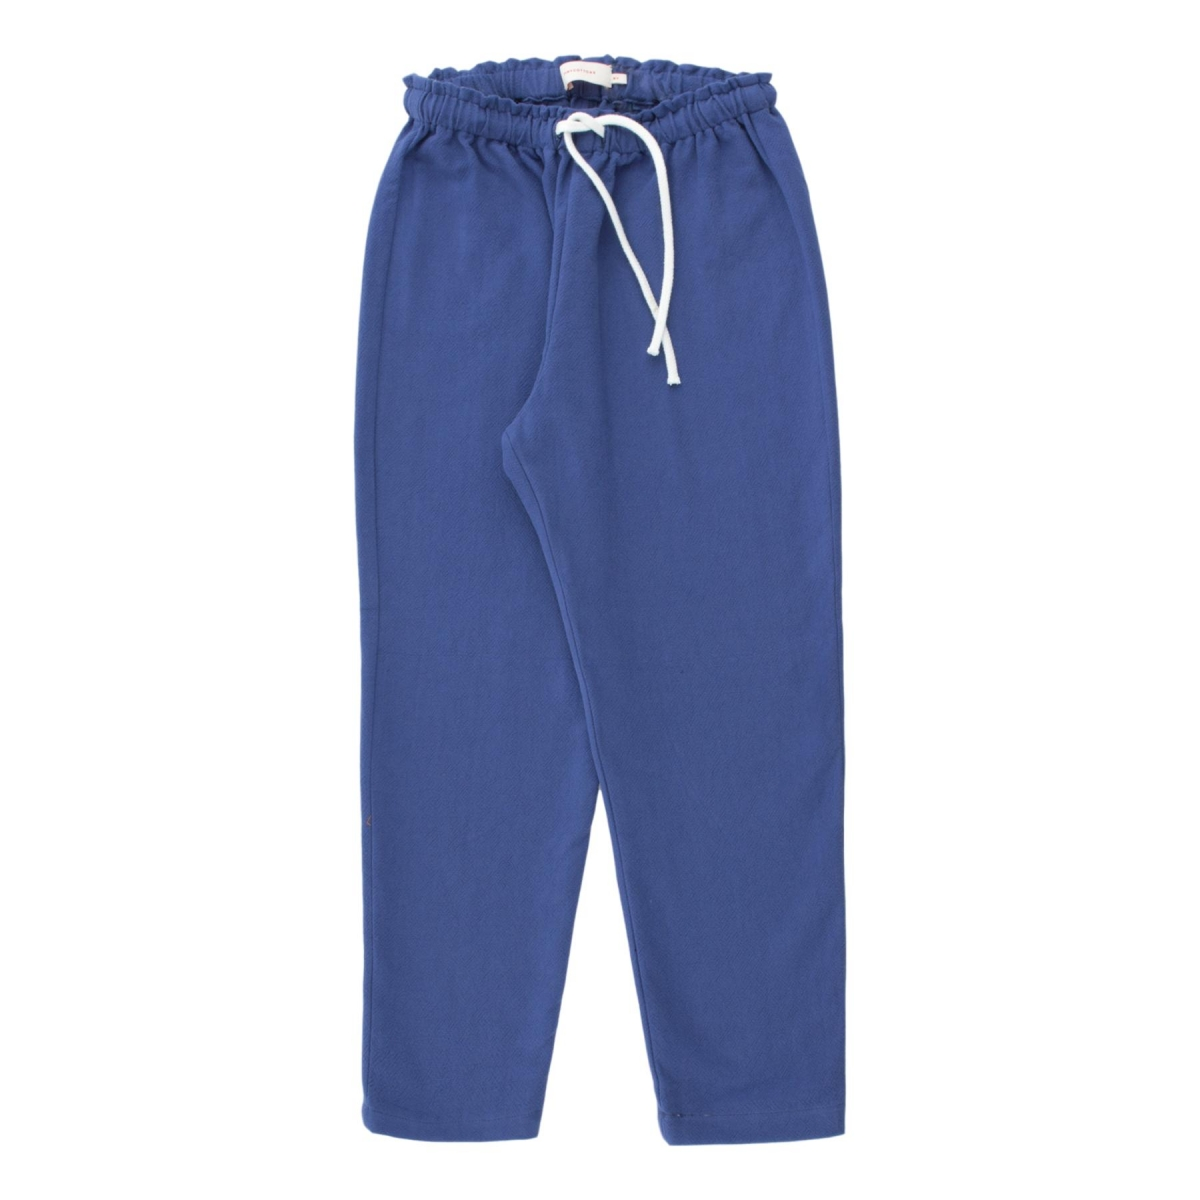 Tiny Cottons - Solid Pant blue - 1